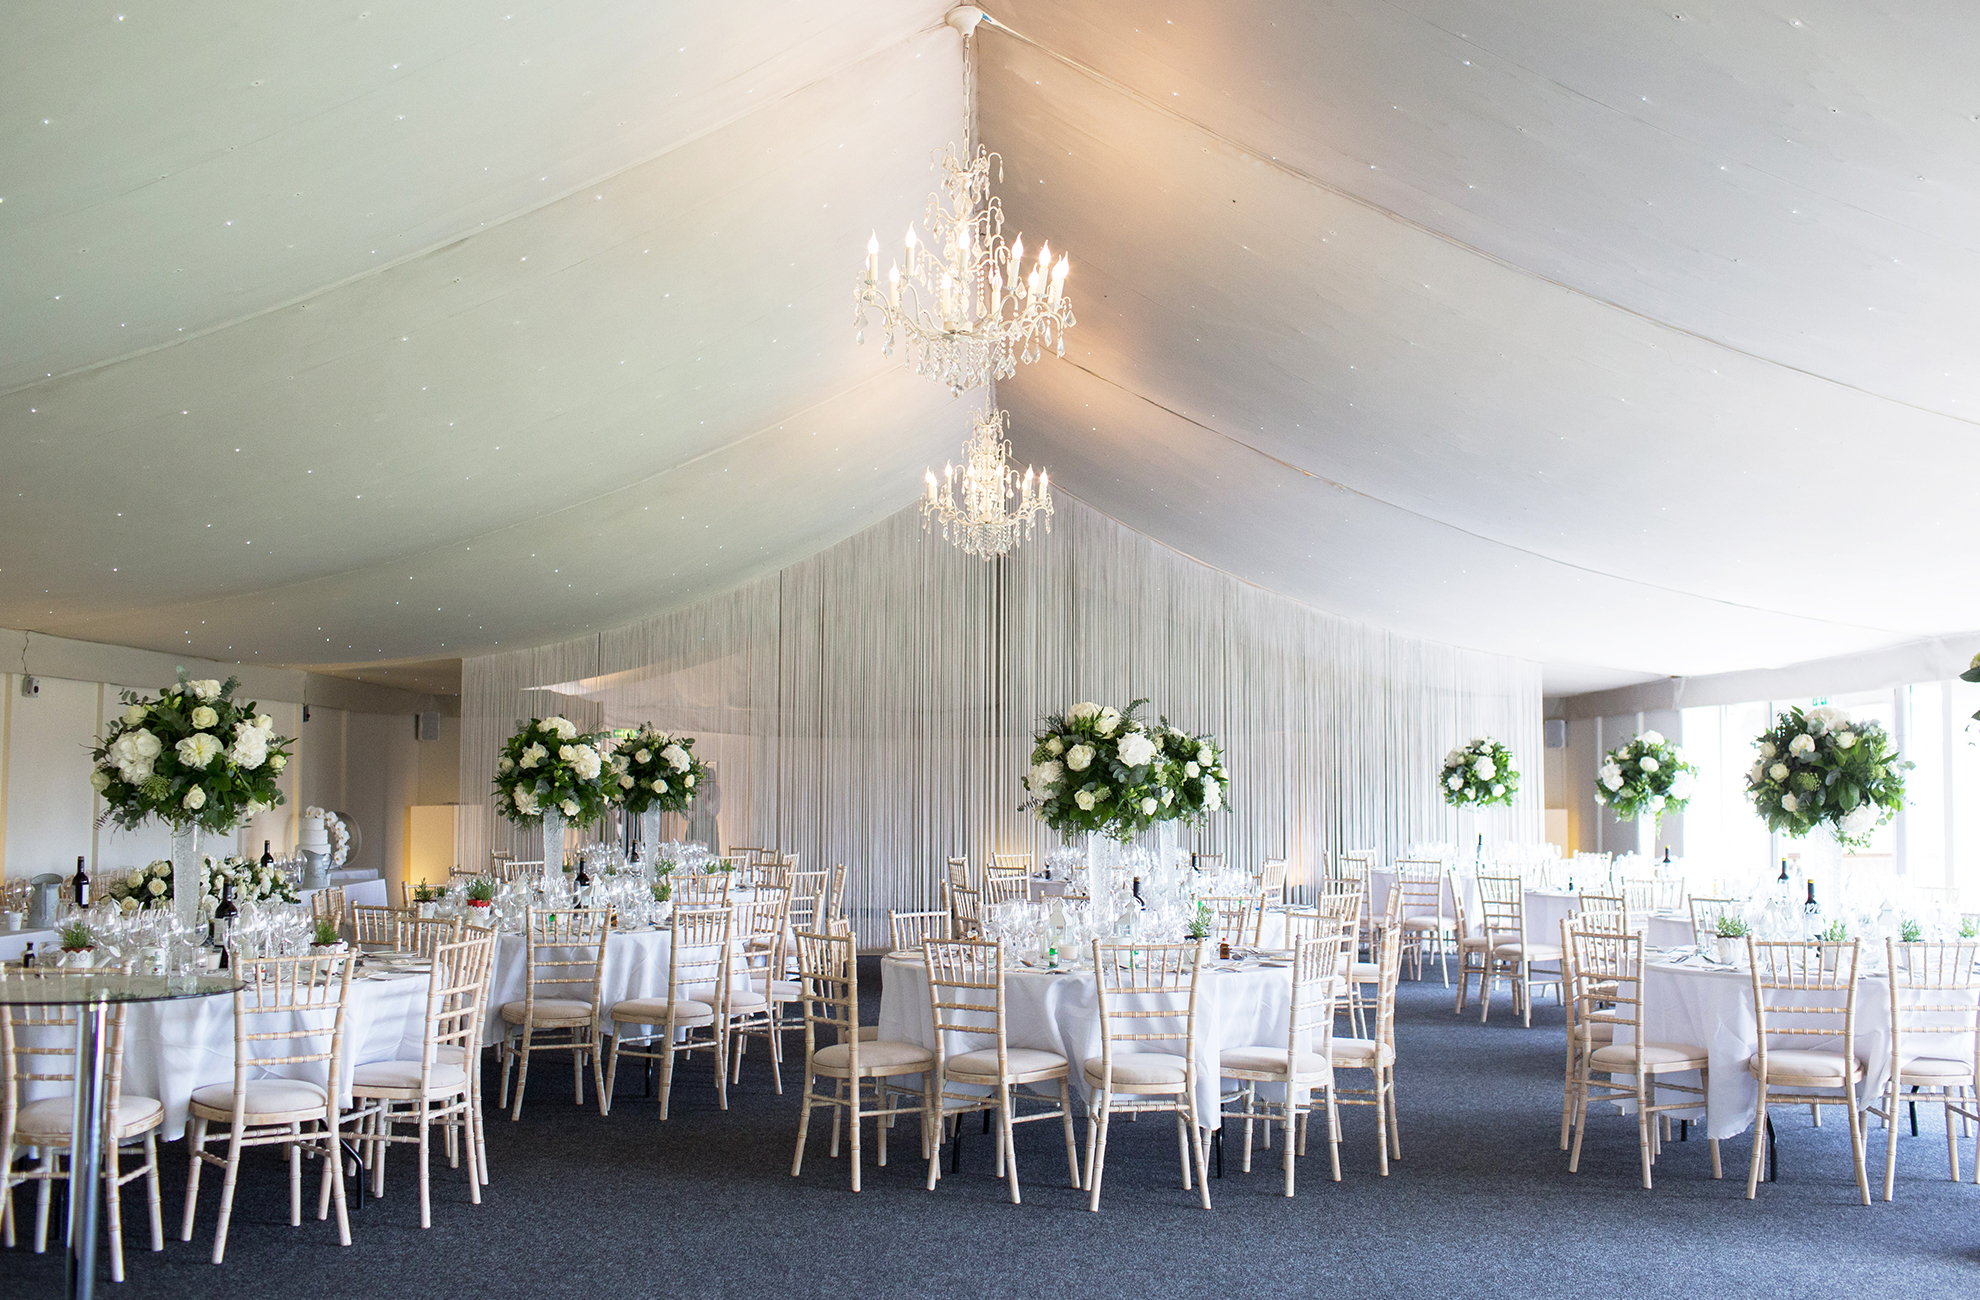 What makes Combermere Abbey a unique wedding venue